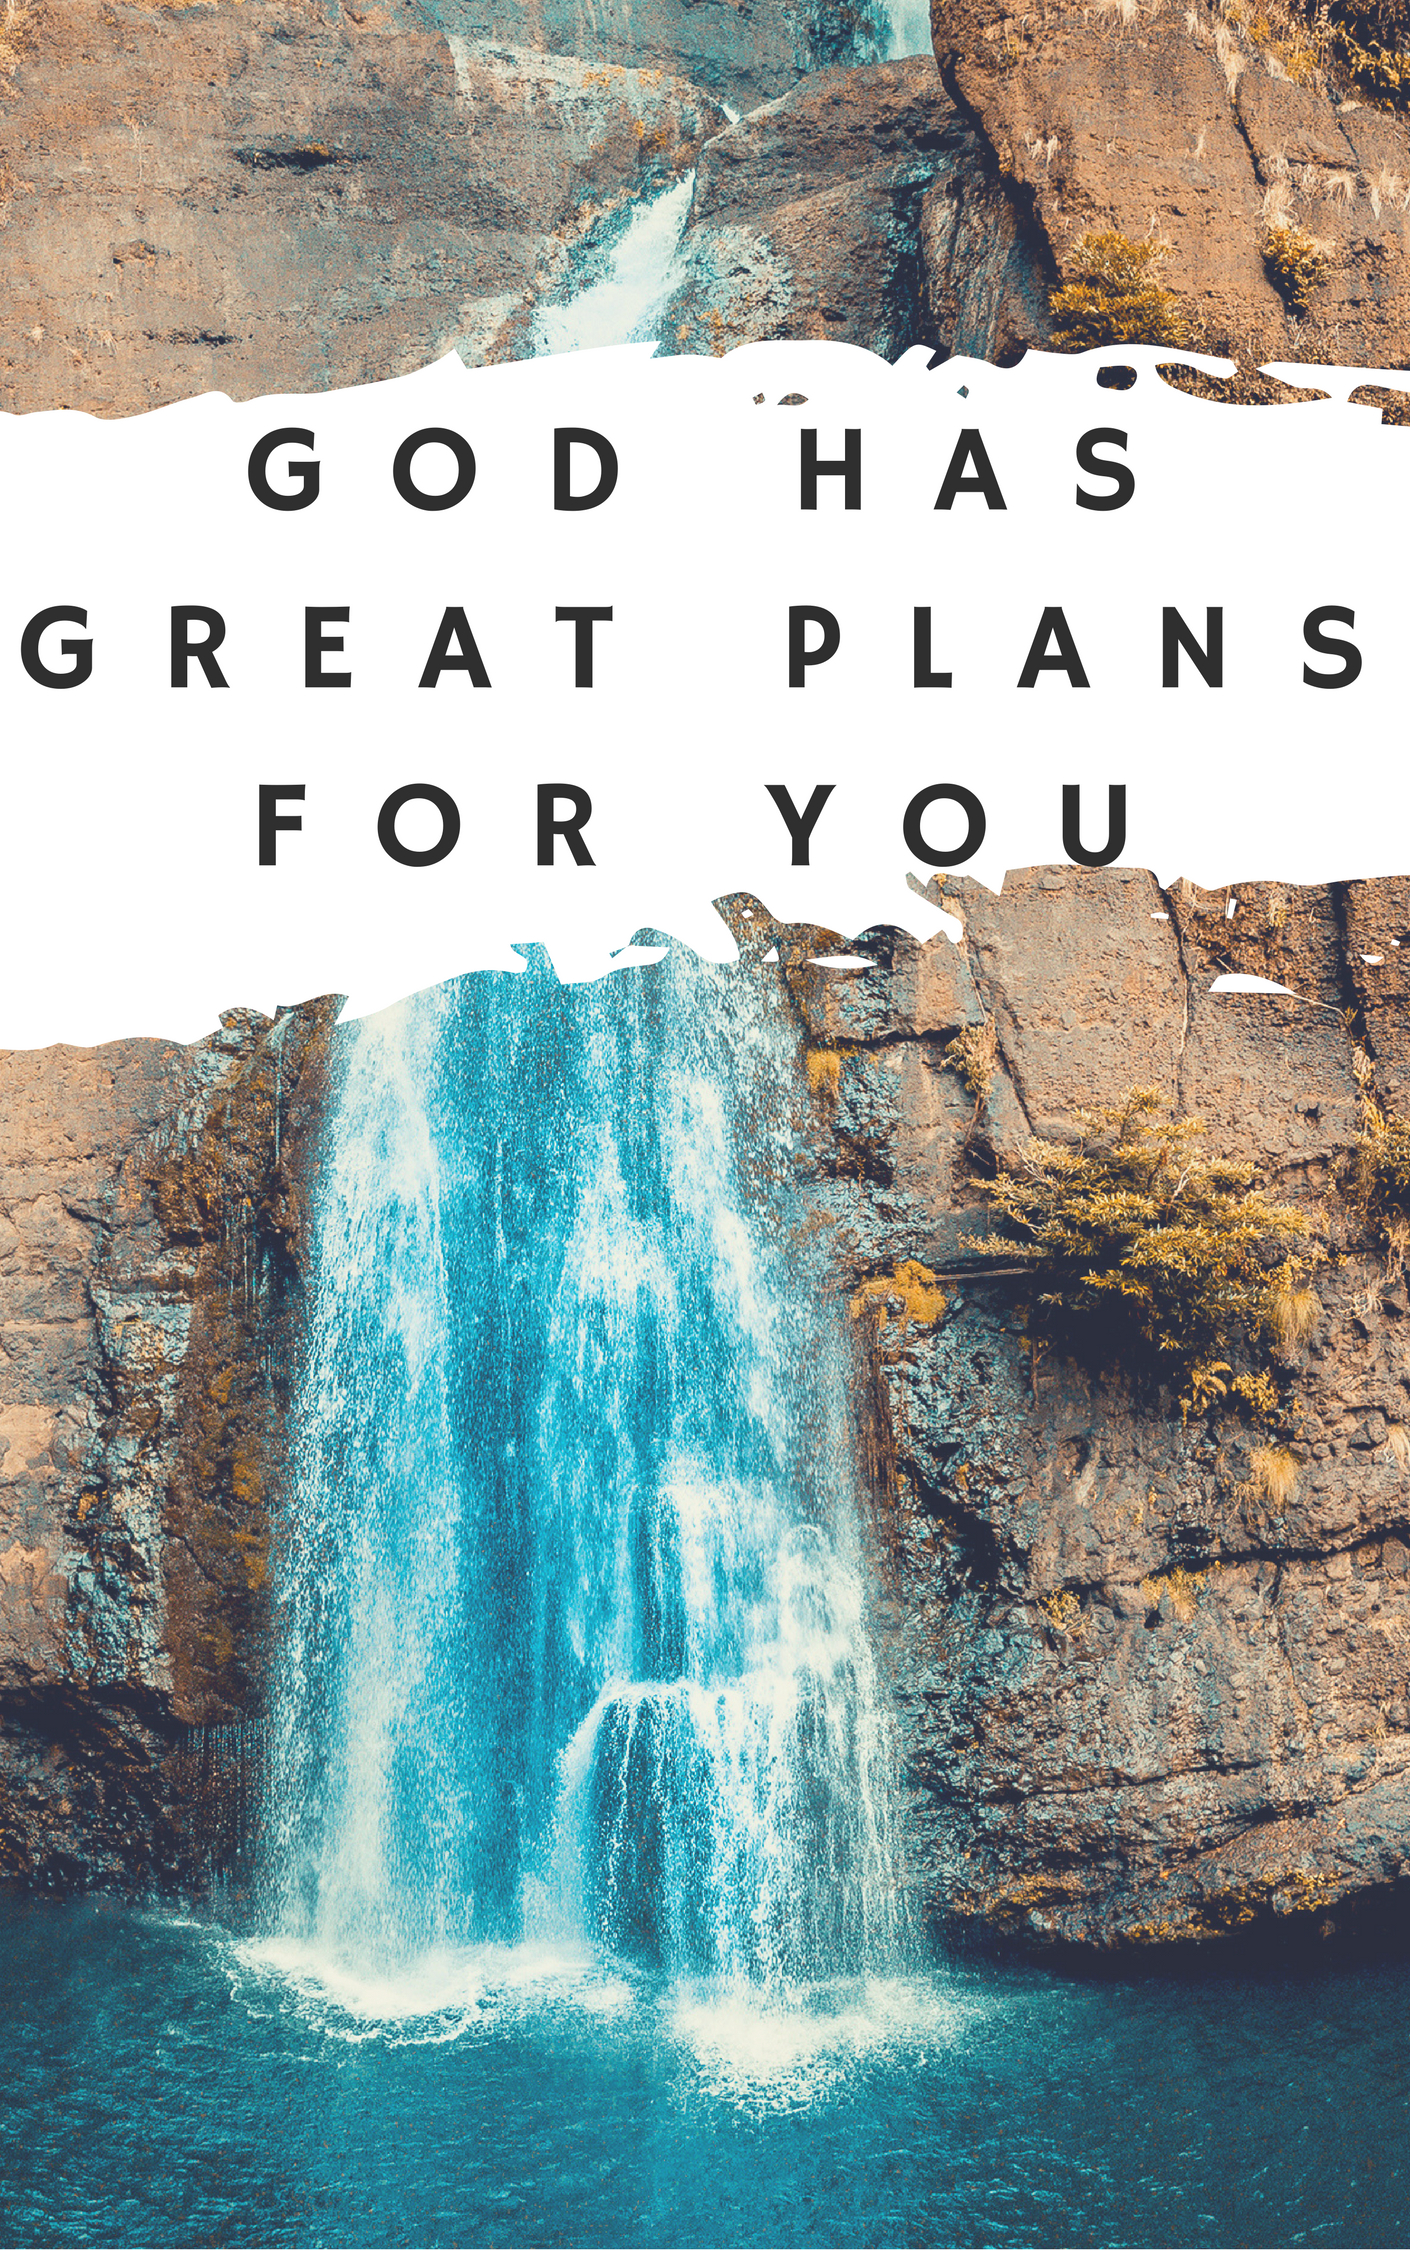 Free Printable Birthday Card With Scripture | Printable Christian - Free Printable Christian Birthday Cards For Kids